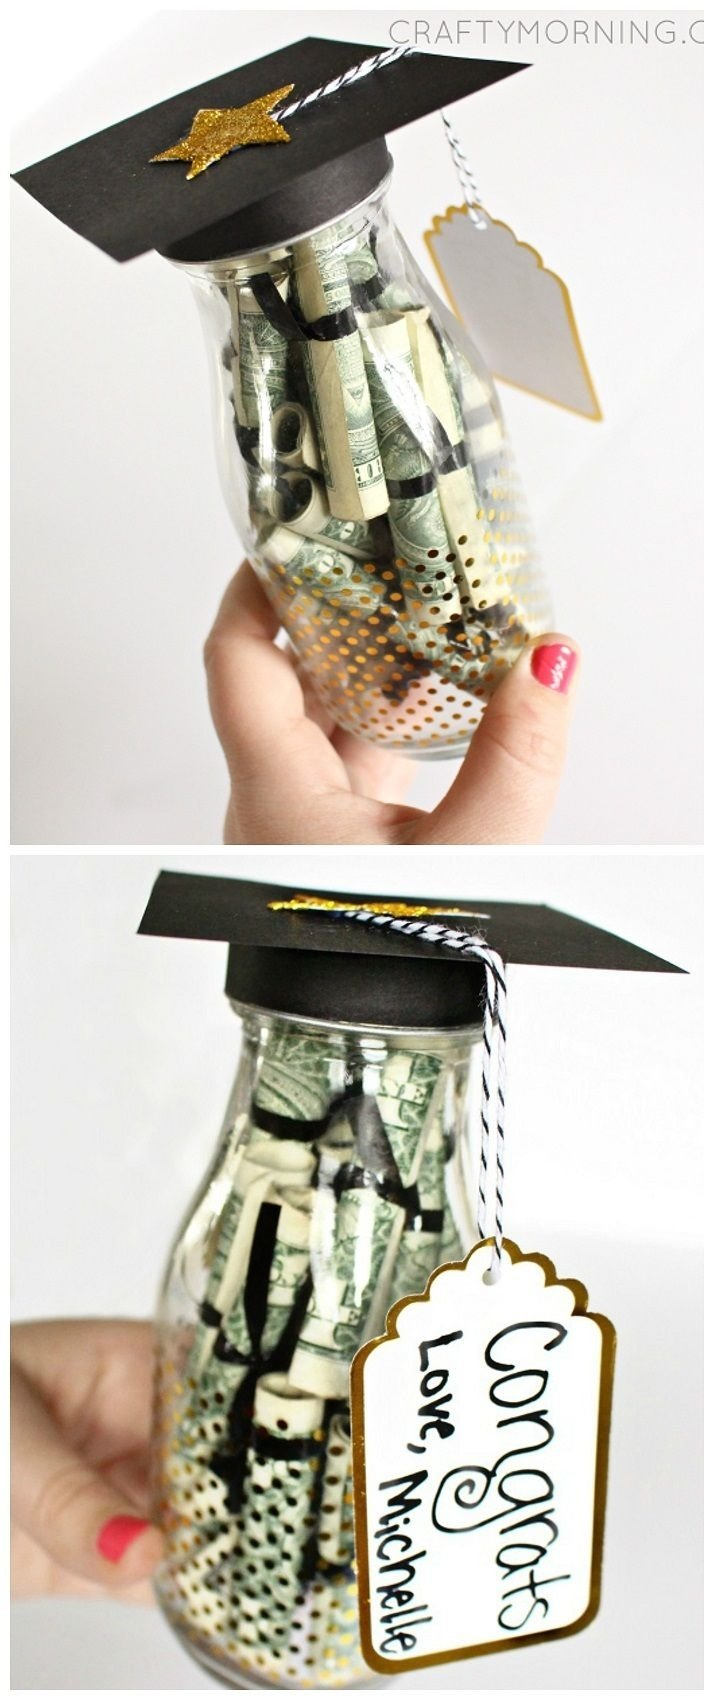 10 Nice College Graduation Gift Ideas For Boyfriend graduation glass bottle gift dollar bill diplomas perfect for 7